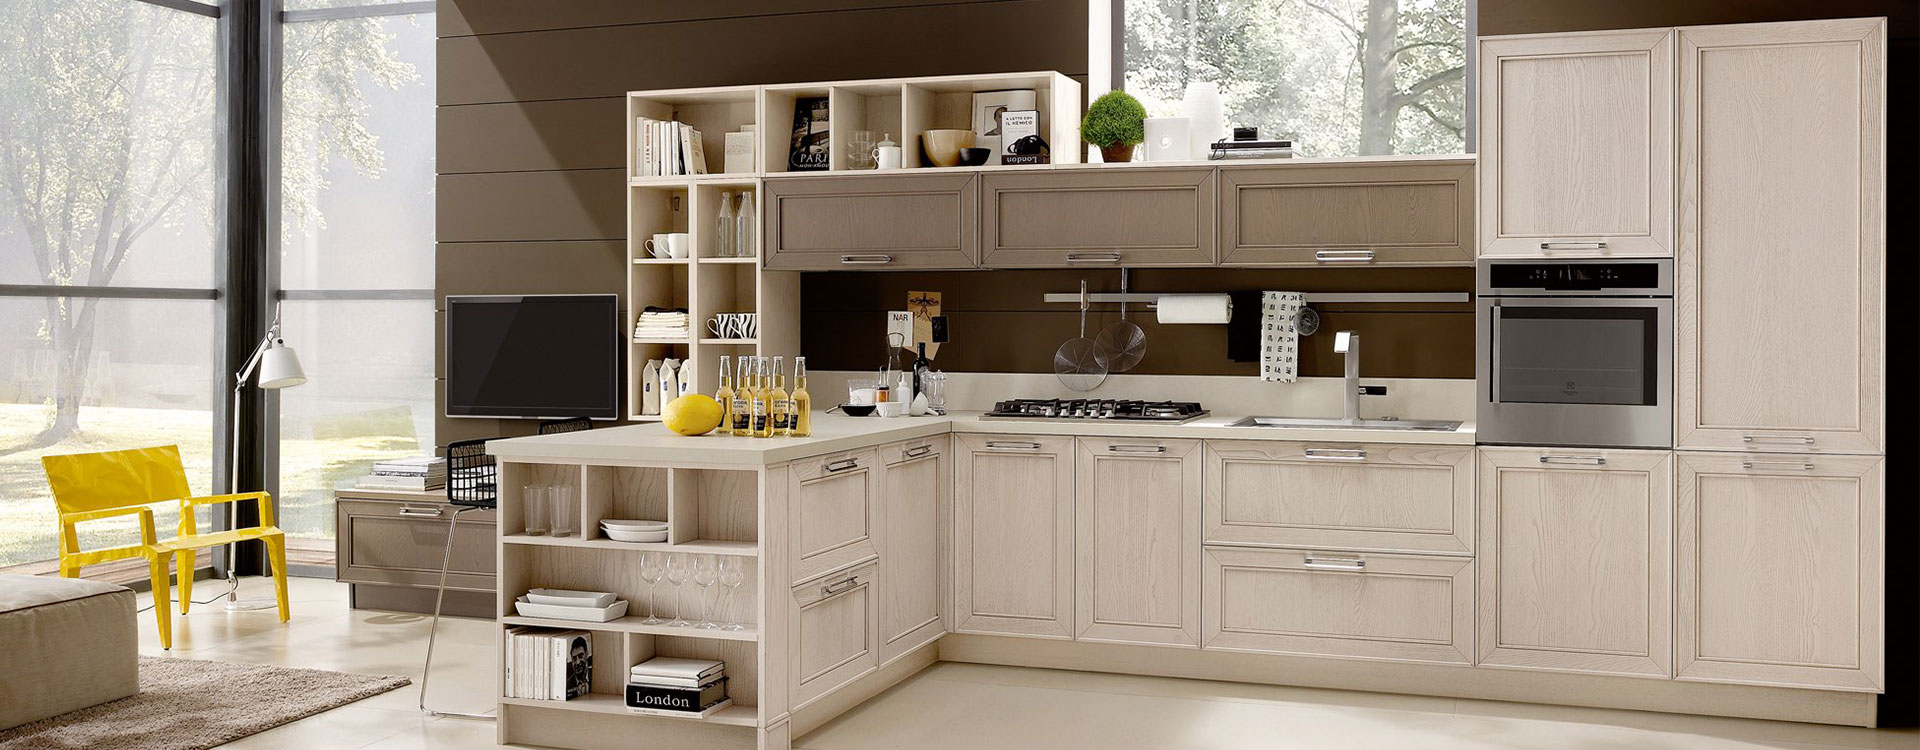 modular kitchen in rajasthan